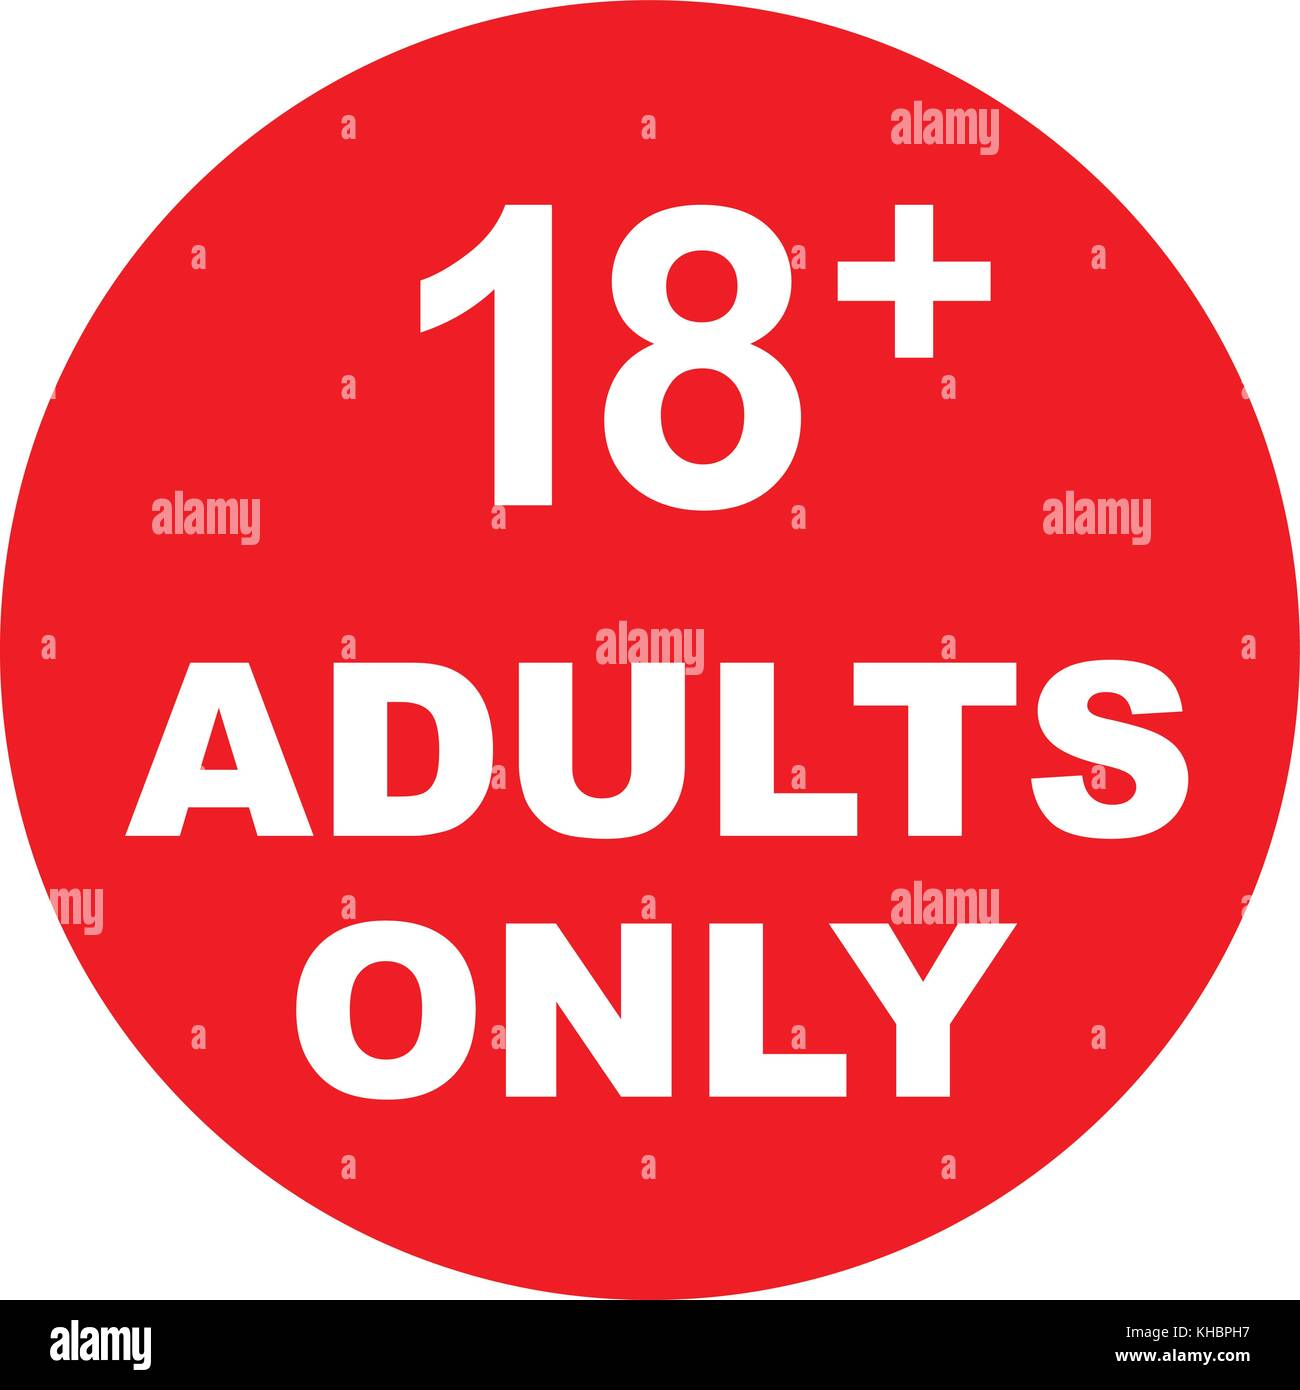 Adults only, red sign with text. Eighteen plus years sign, vector illustration. - Stock Vector